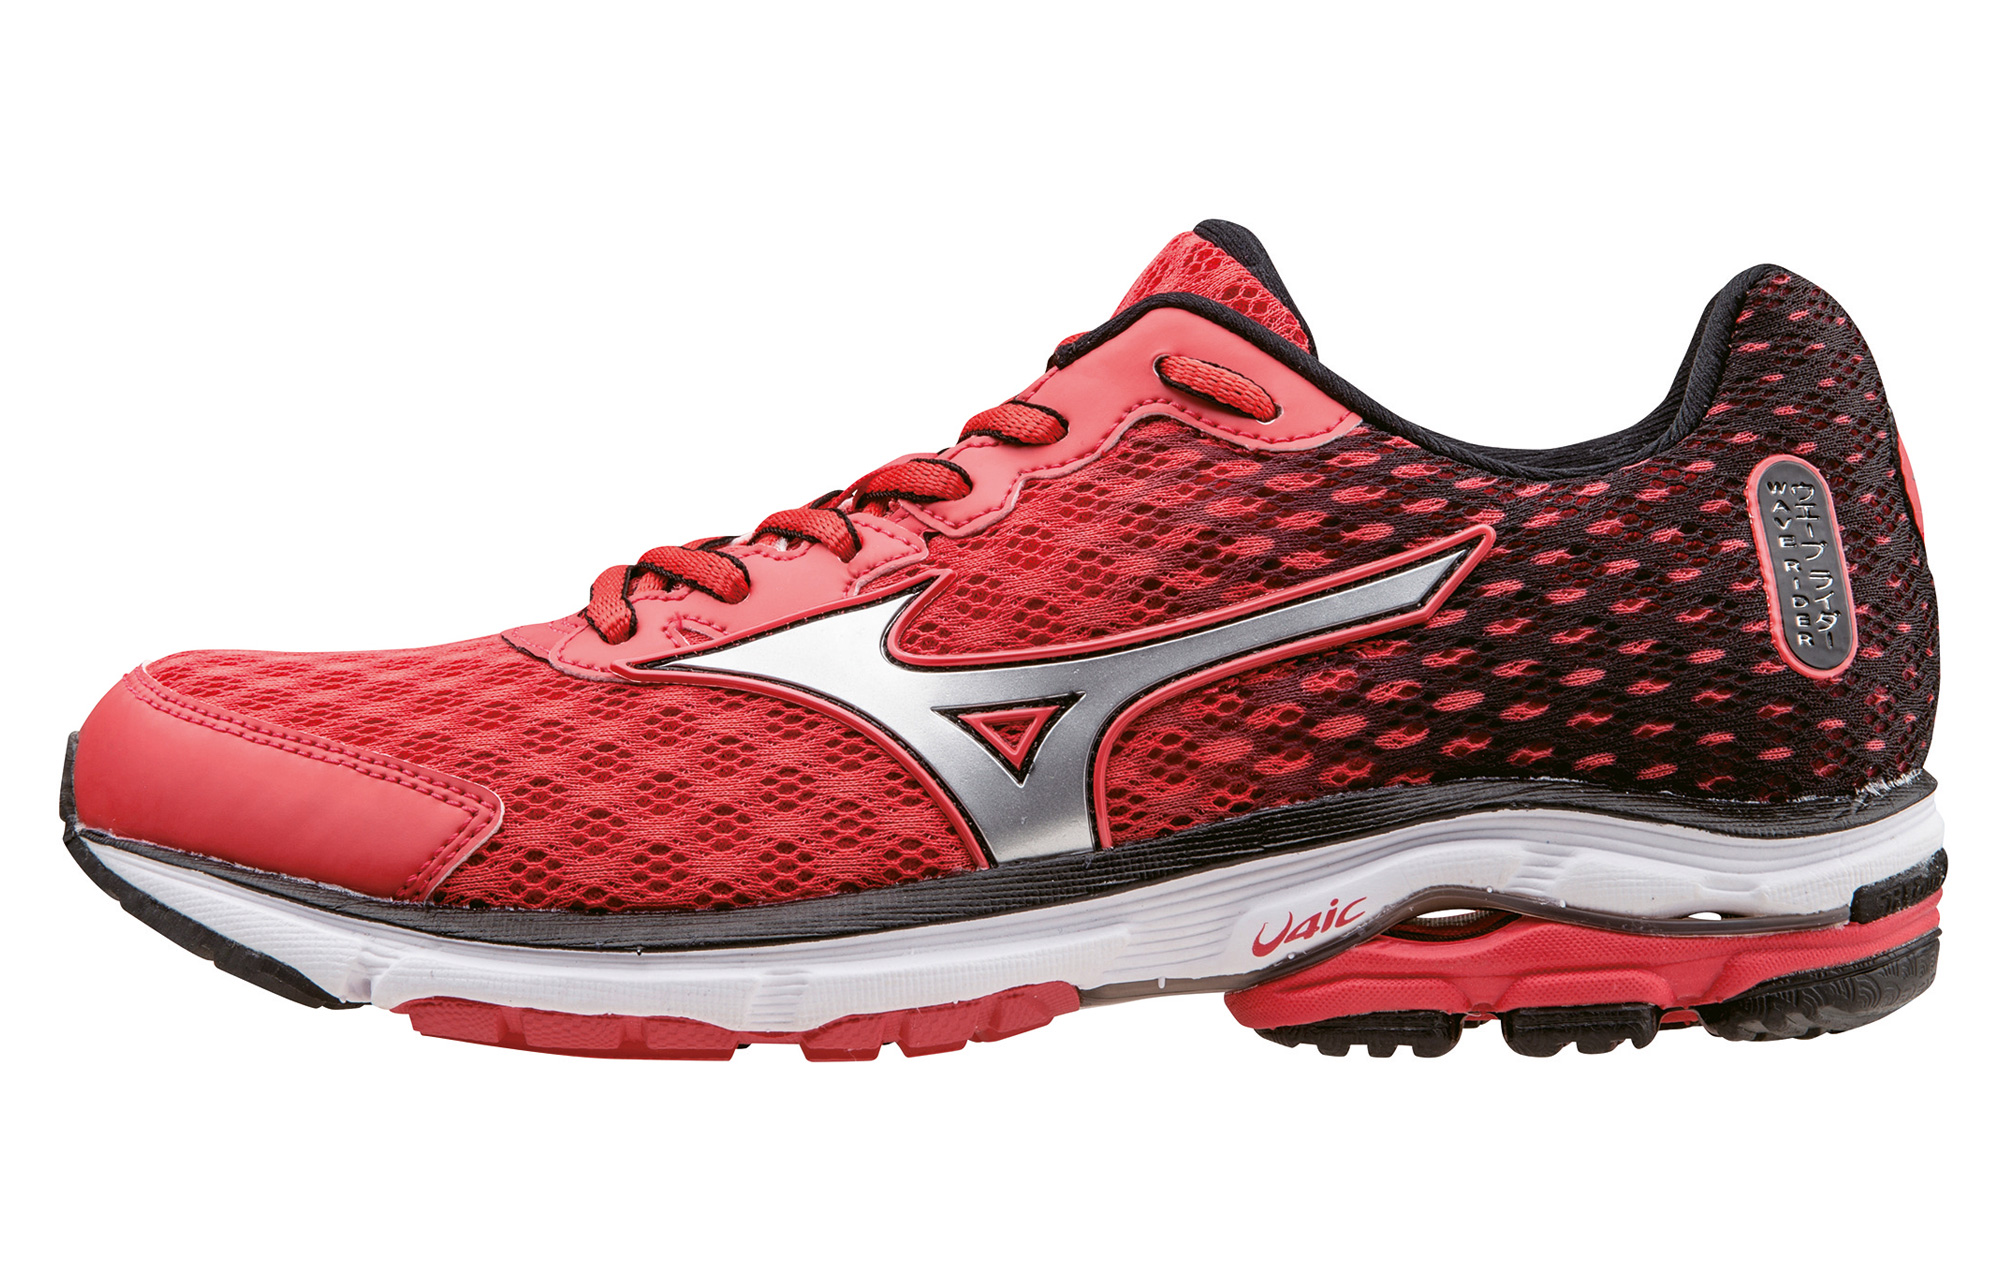 info for 01a52 bb7b9 MIZUNO Shoes WAVE RIDER 18 Red Black Women